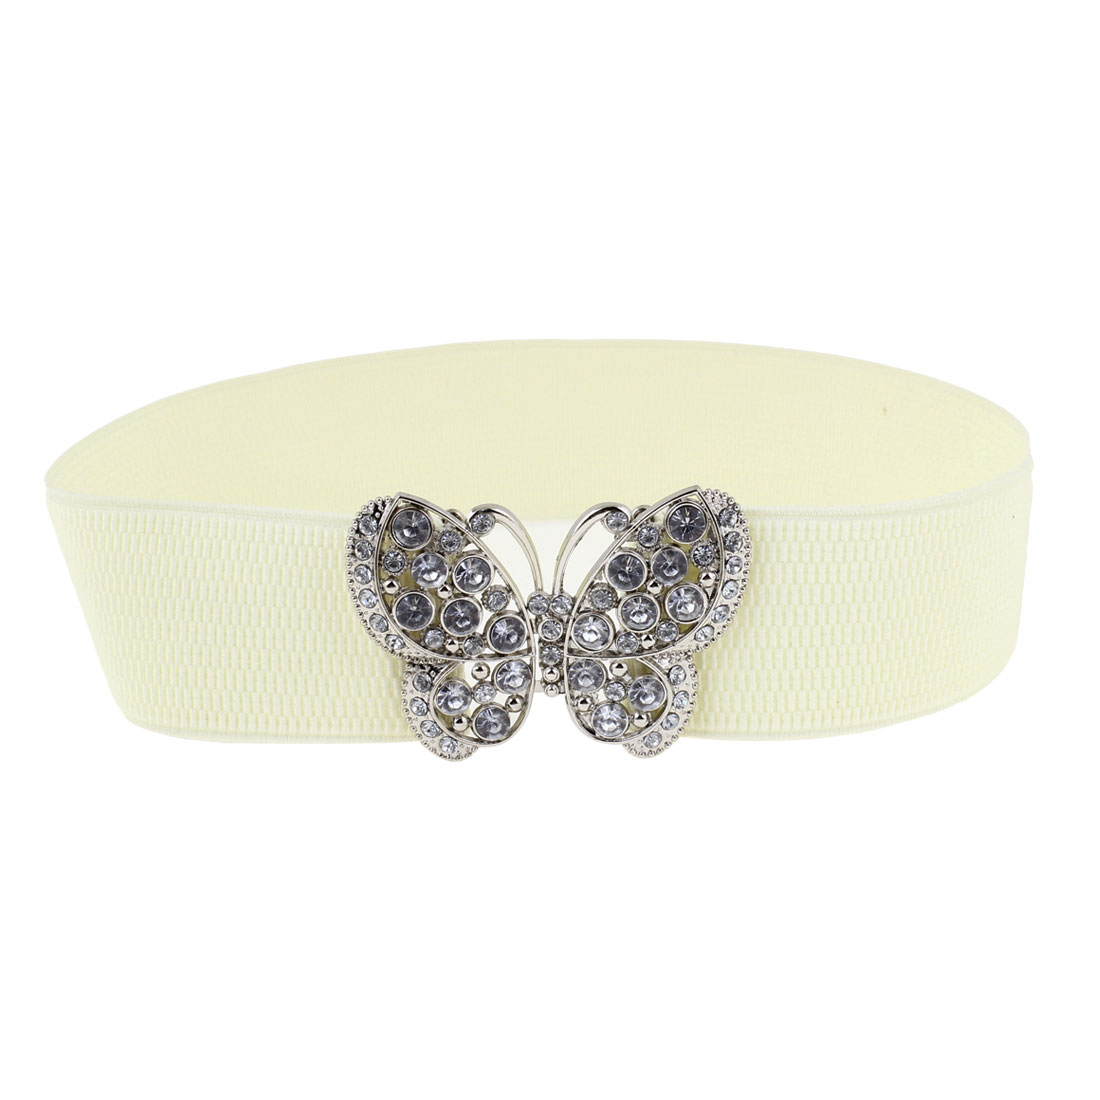 Women Interlocking Buckle Rhinestone Decor Elastic Waist Belt Beige